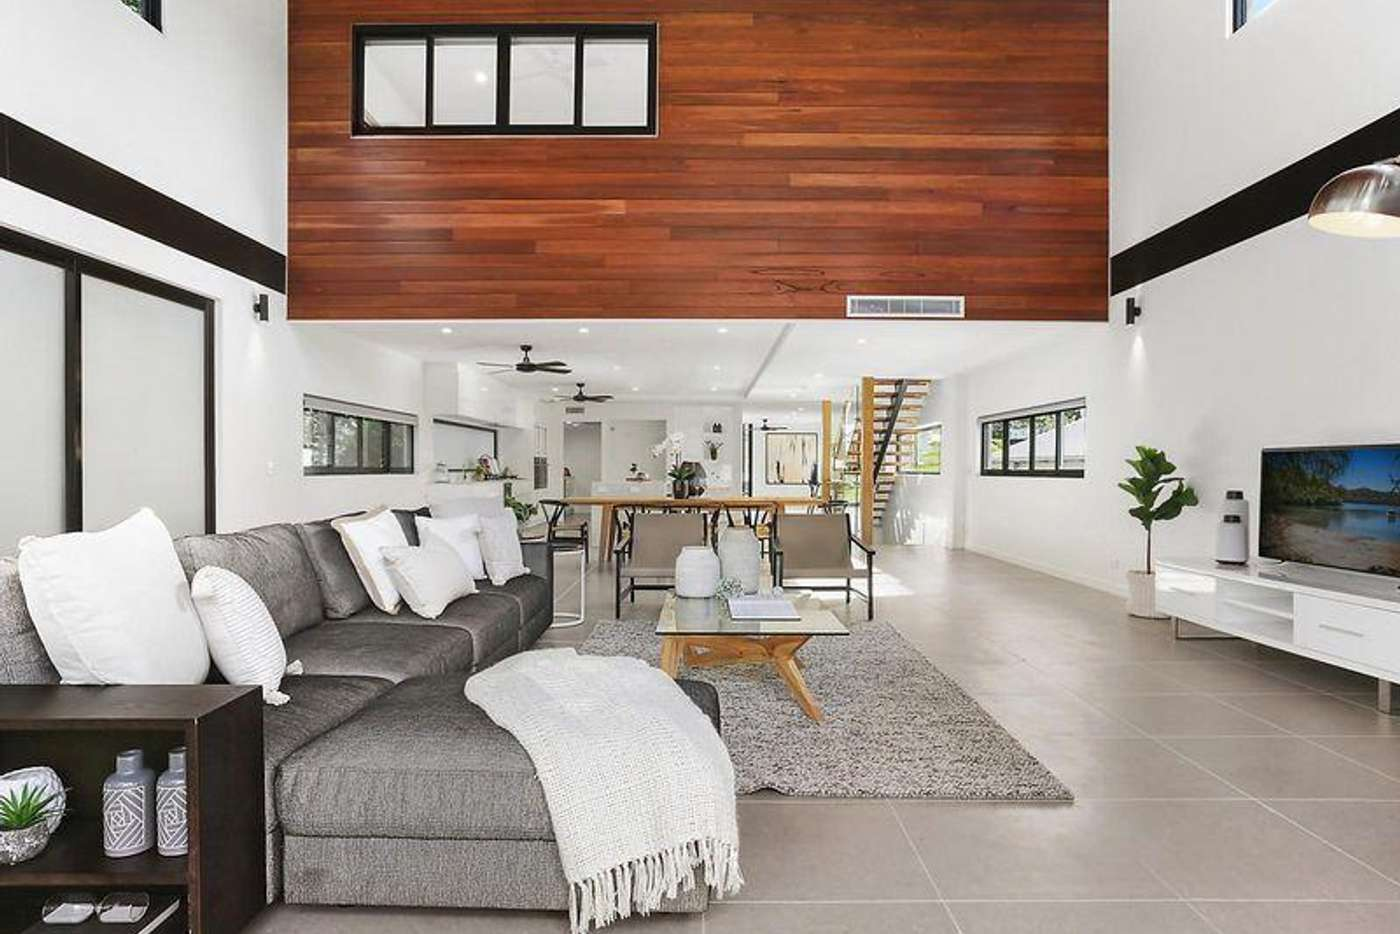 Fifth view of Homely house listing, 25 Merinda Street, Greenslopes QLD 4120